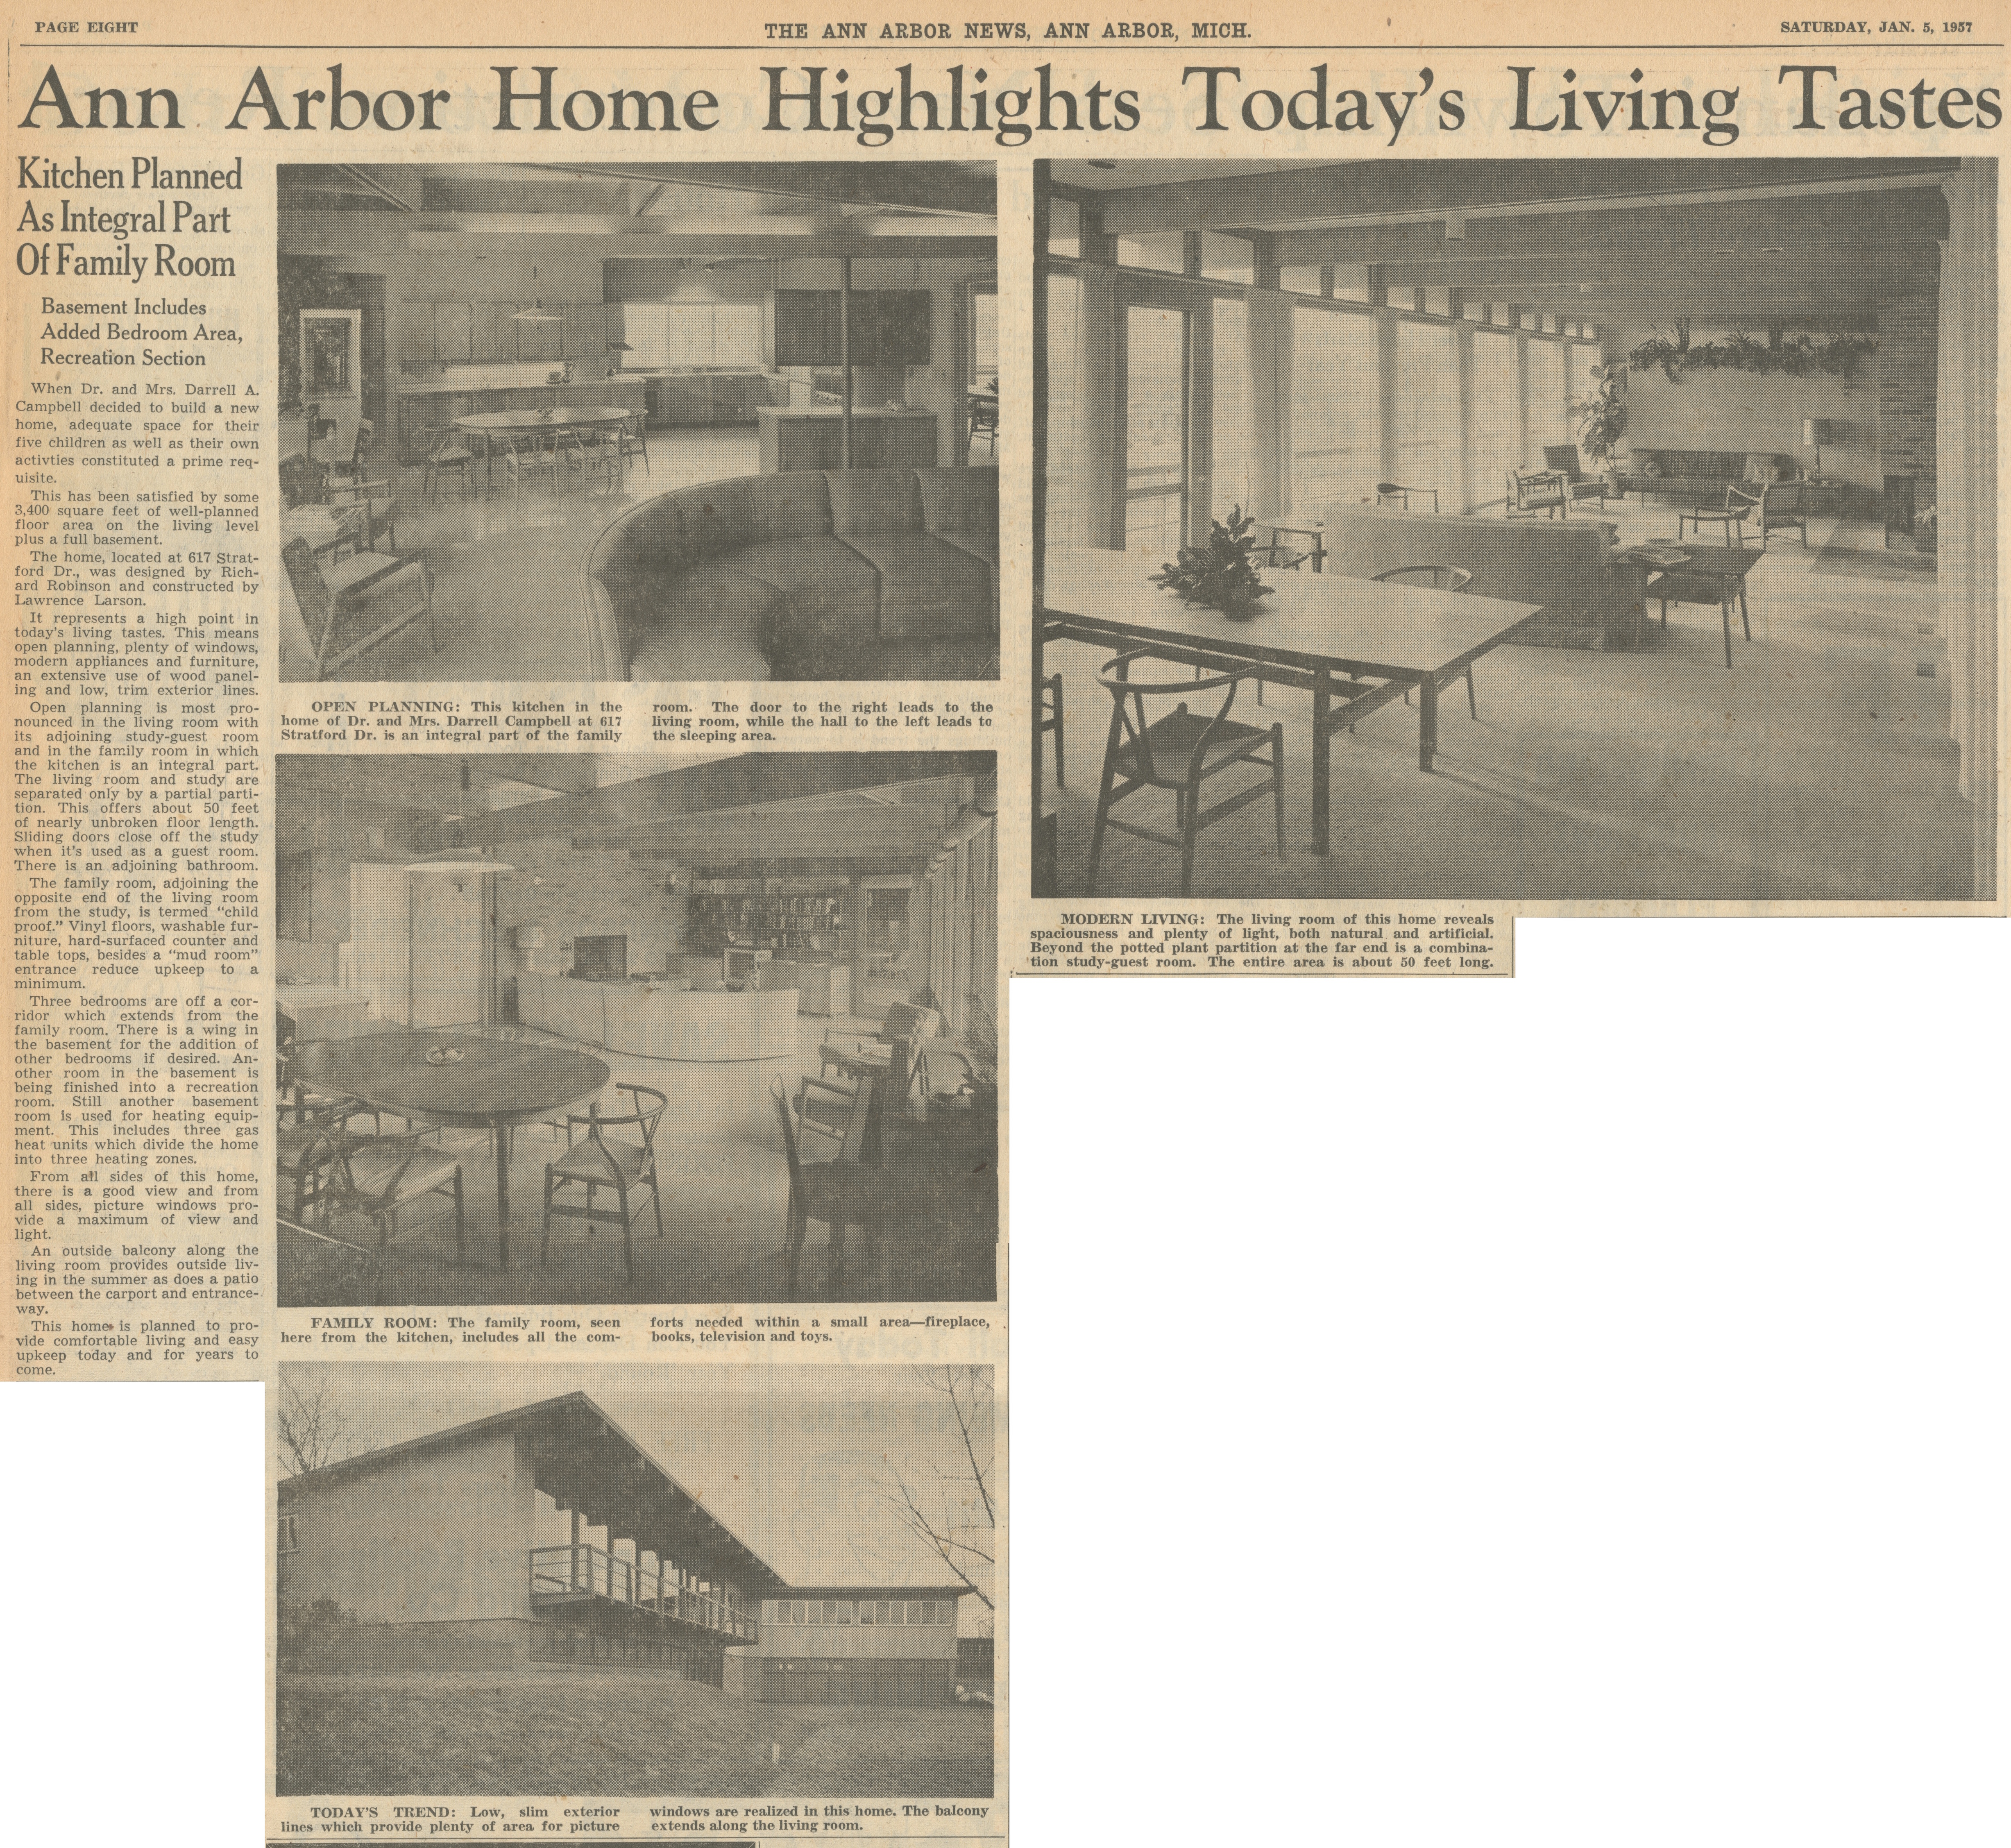 Ann Arbor Home Highlights Today's Living Tastes image